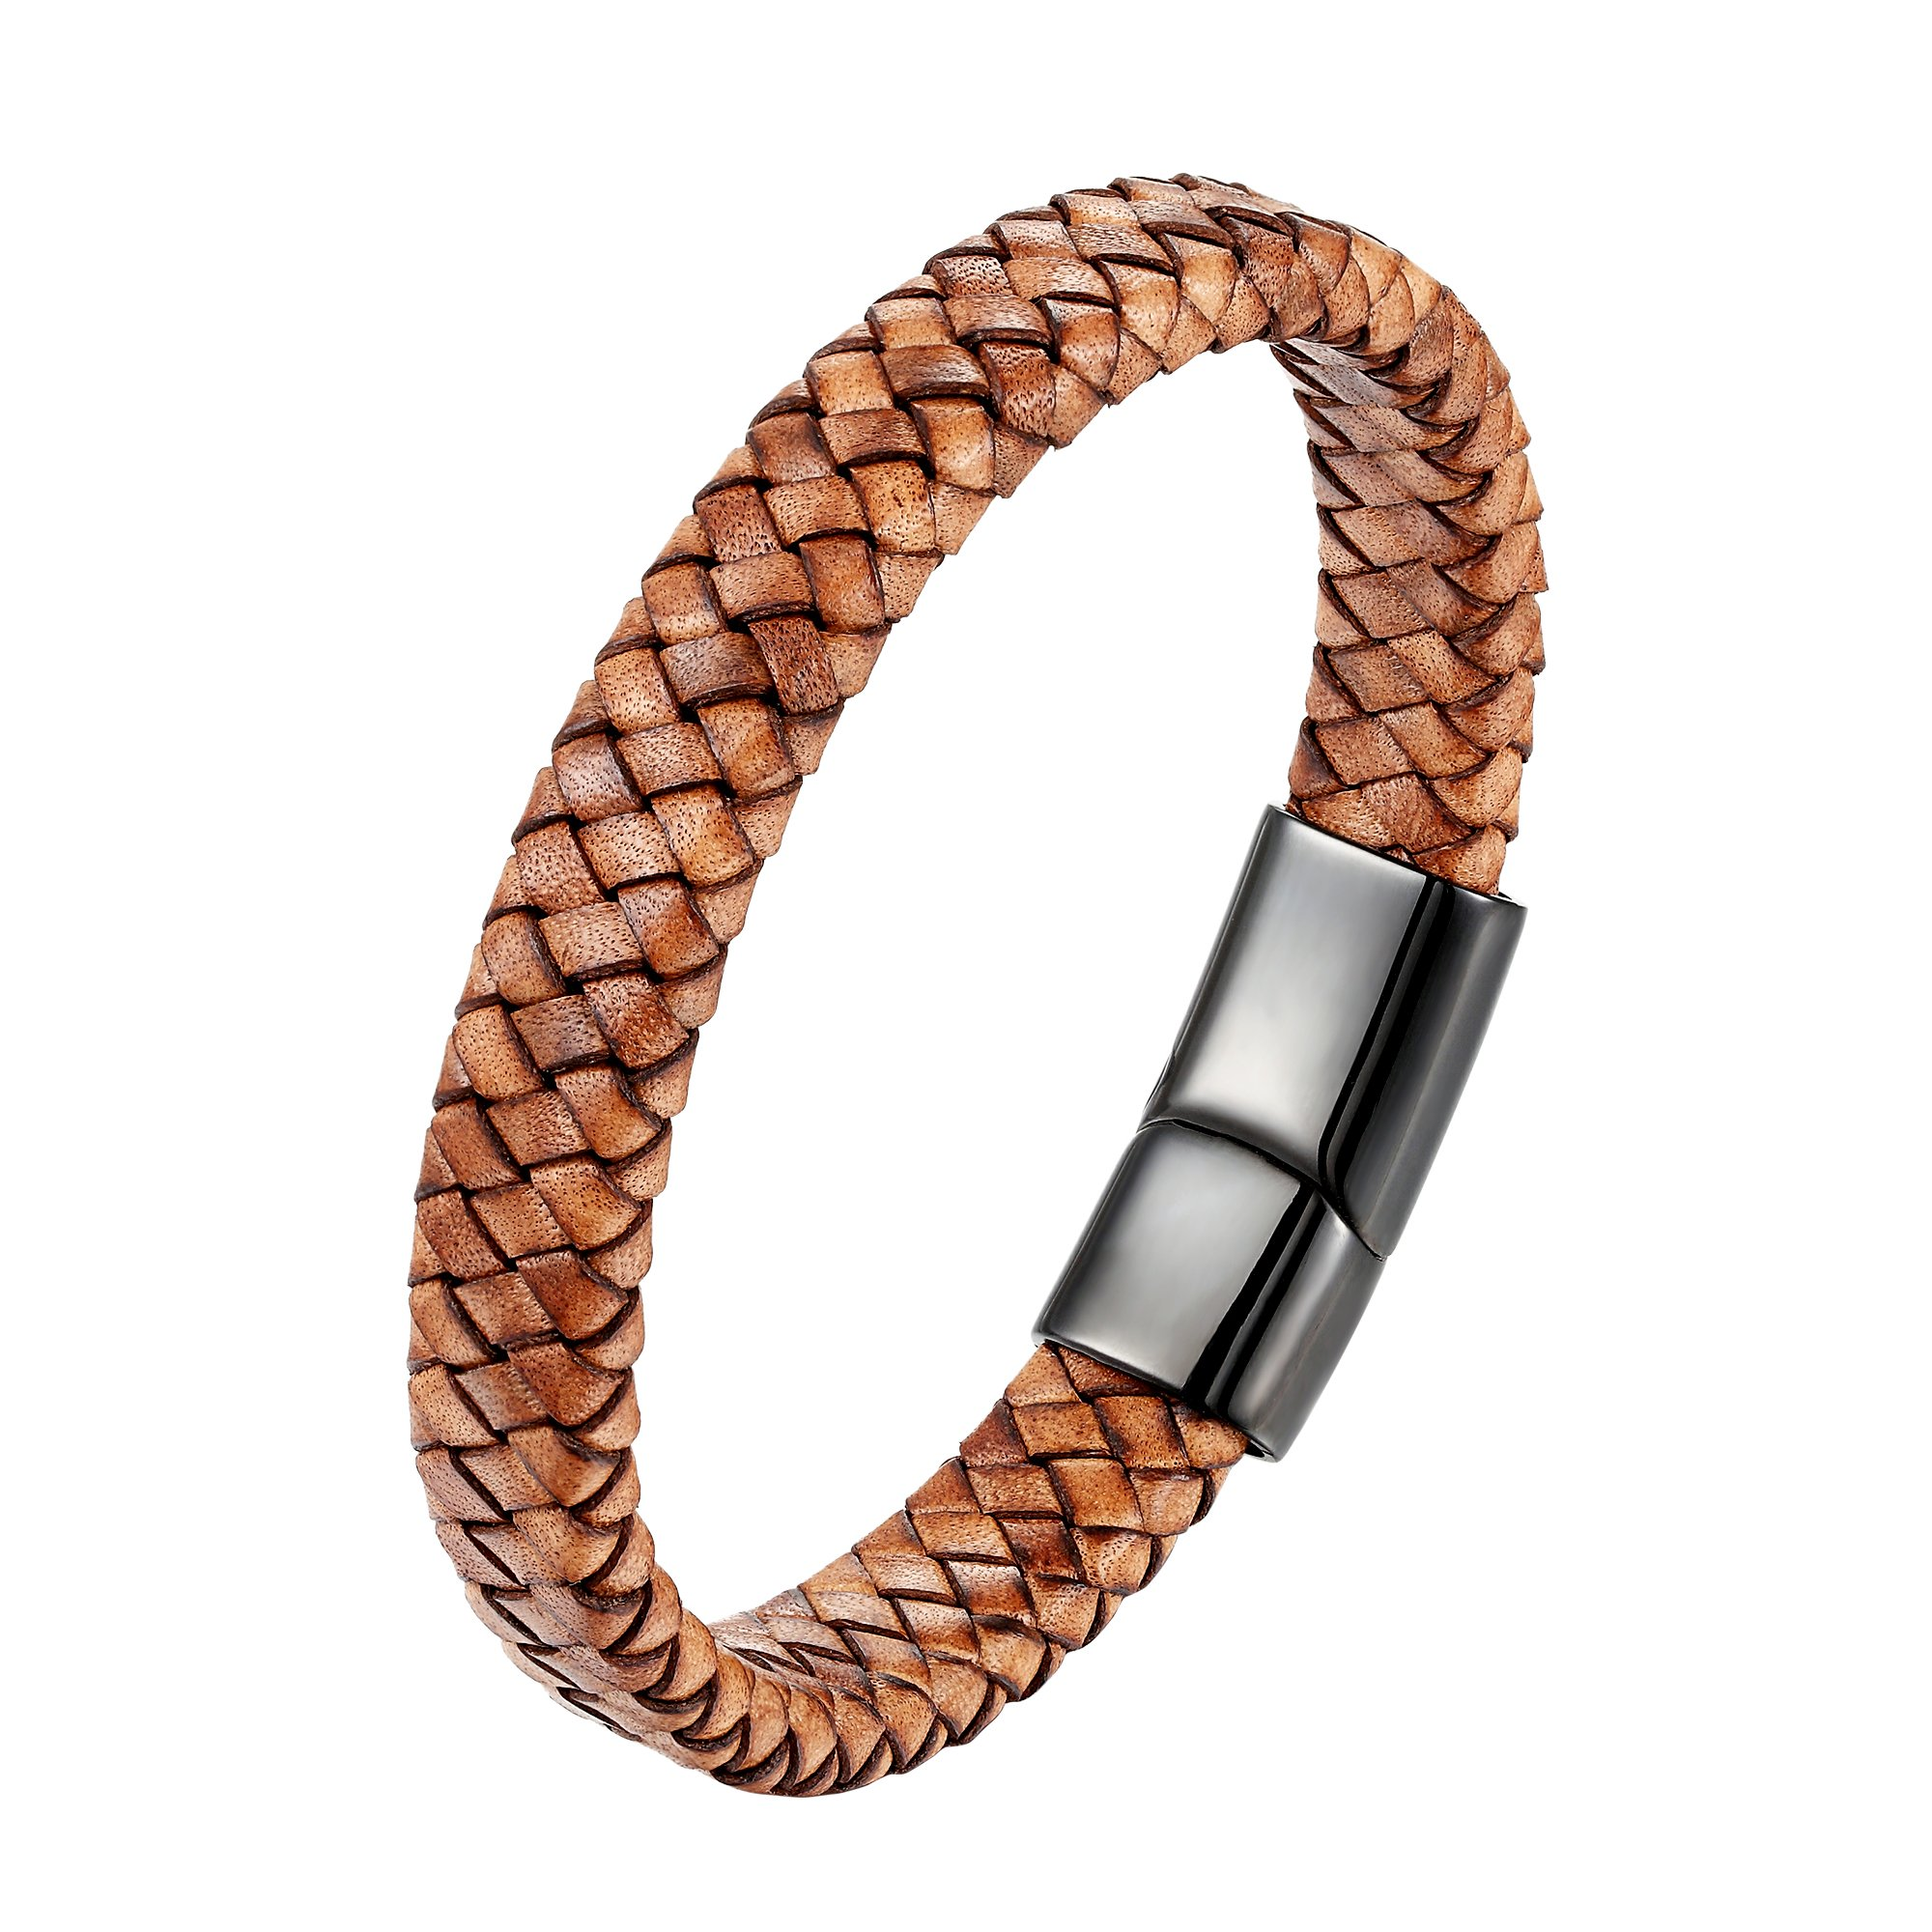 CHOMAY Braided Genuine Leather Bracelet Stainless Steel Clasp Bangle Wrist Cuff Gift Box 205mm